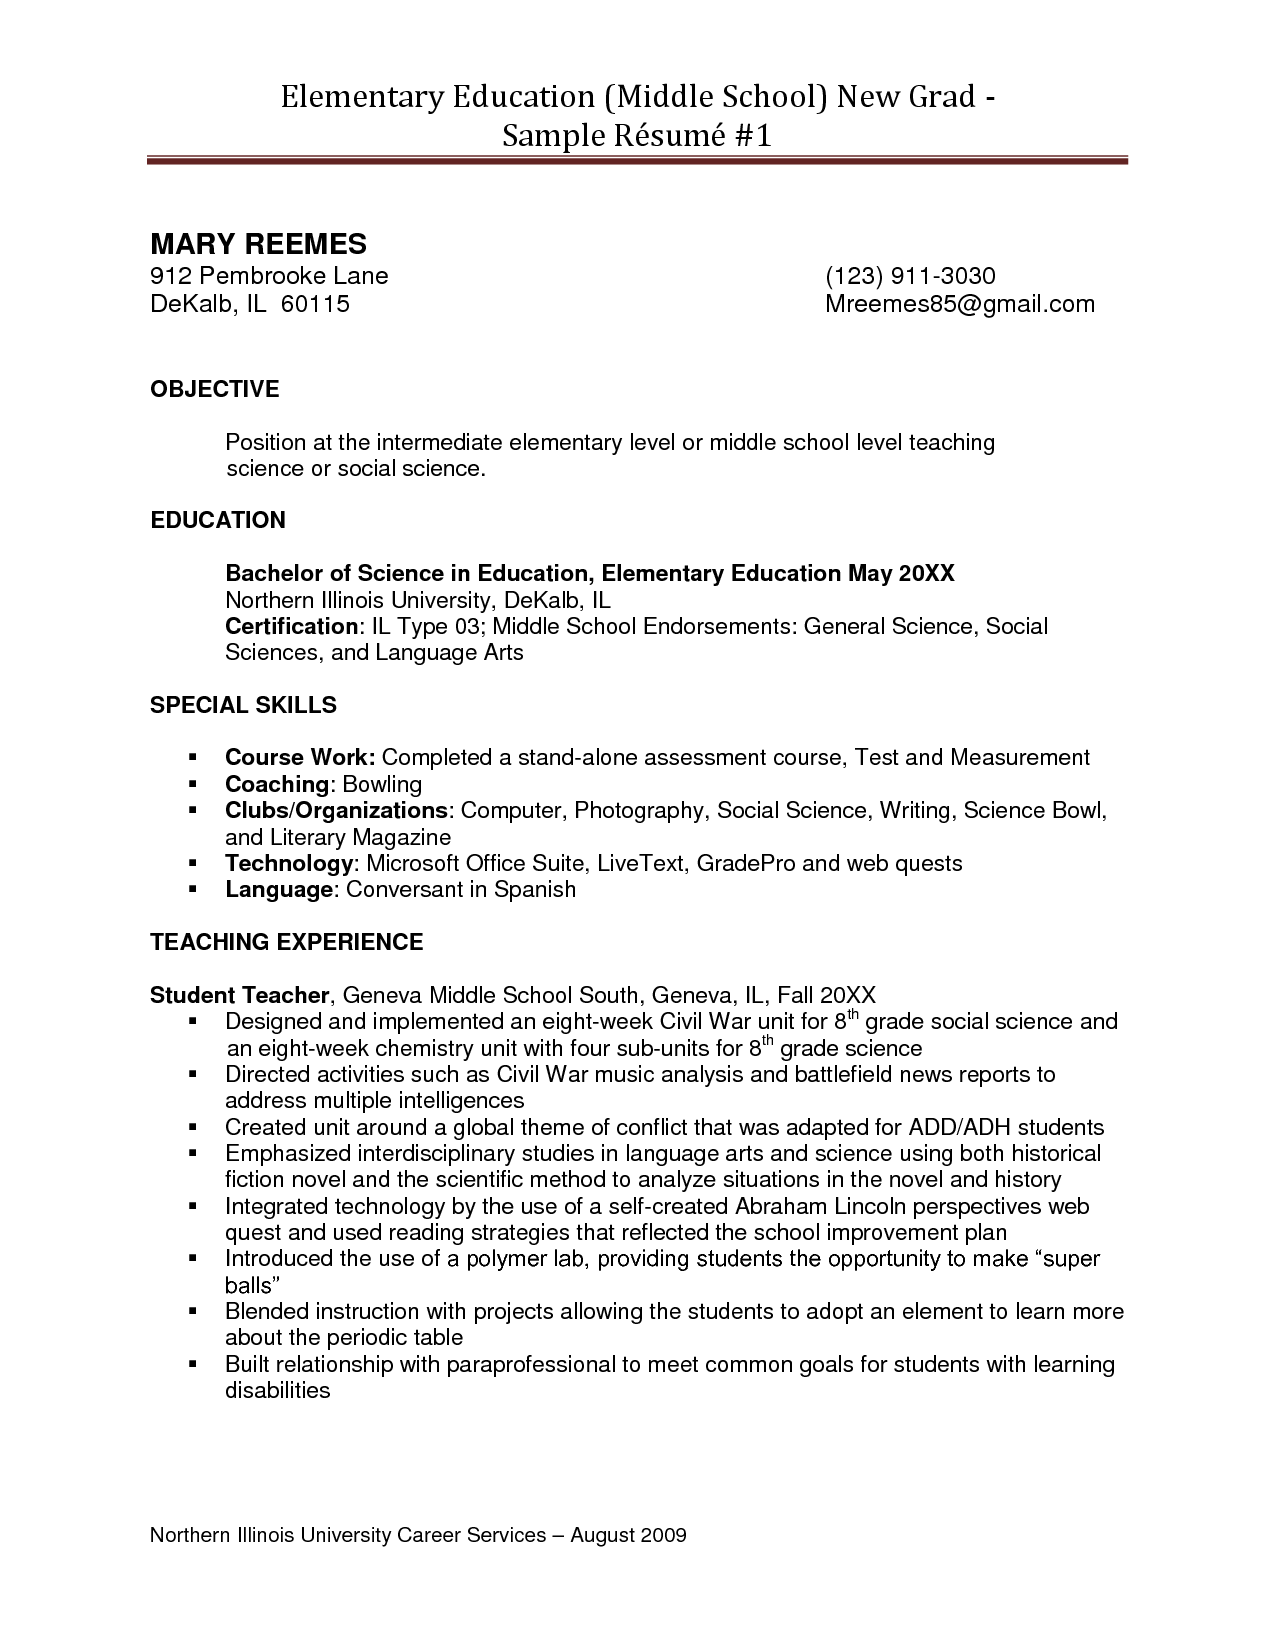 Sample resume for paraprofessional position for Sample resume for paraprofessional position